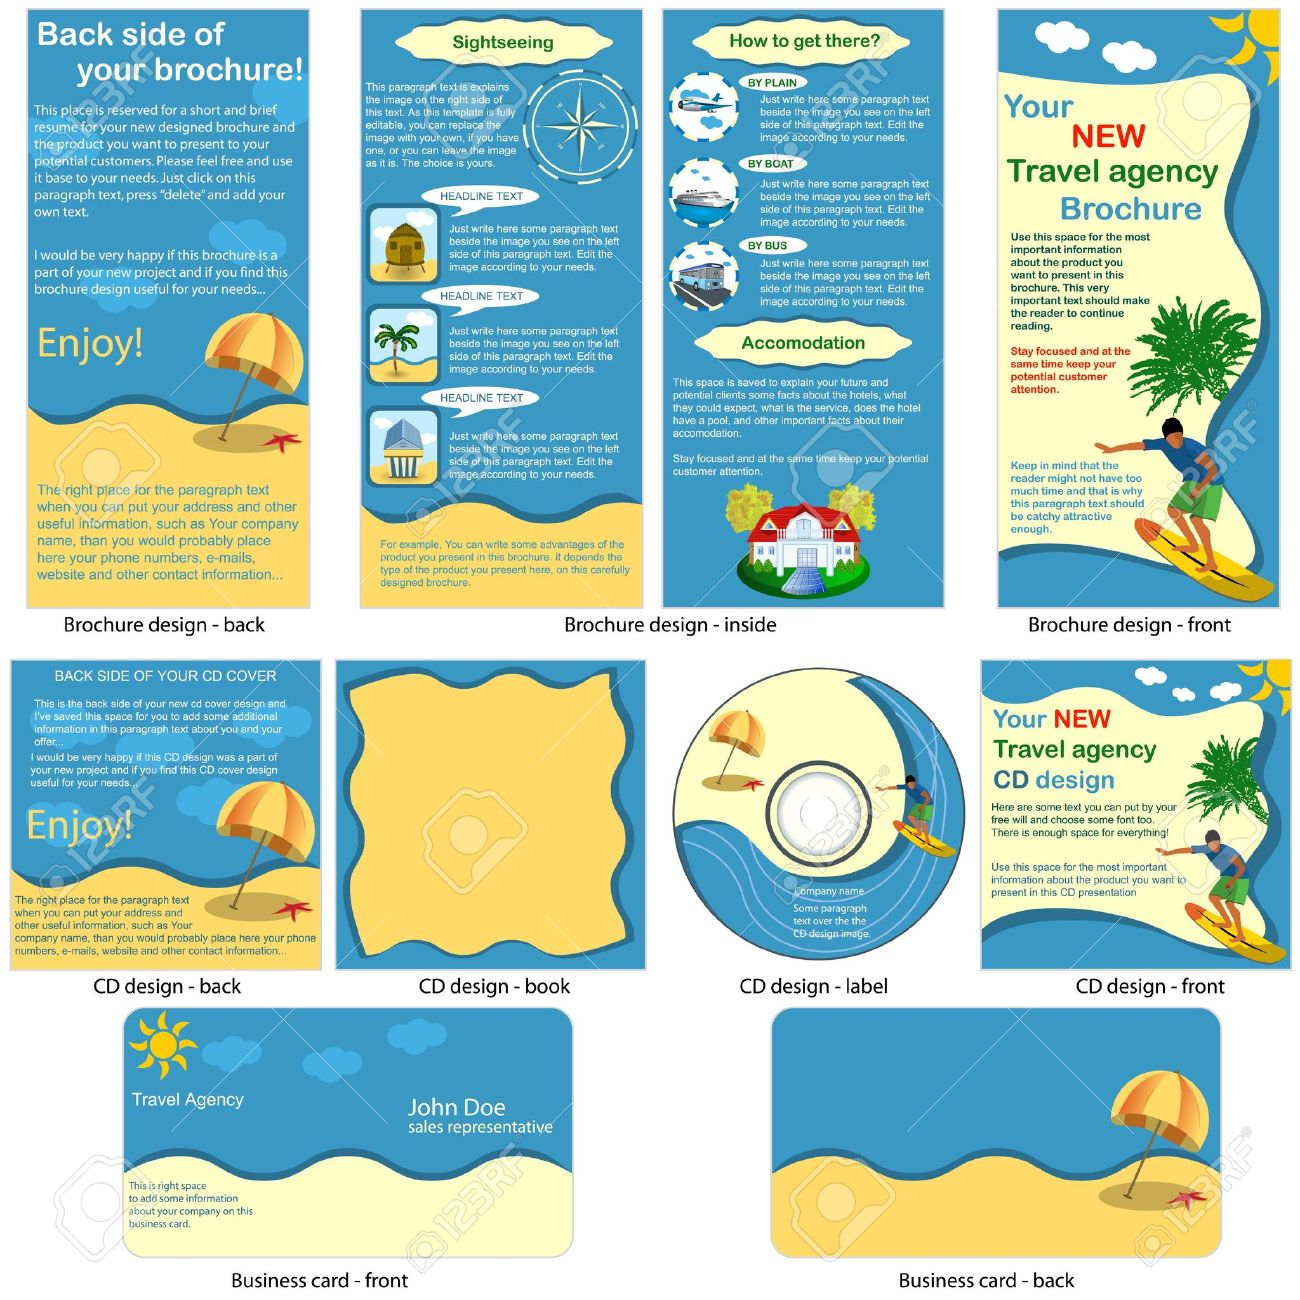 Travel stationary - brochure design, CD cover design and business card design in one package and fully editable - 12490886